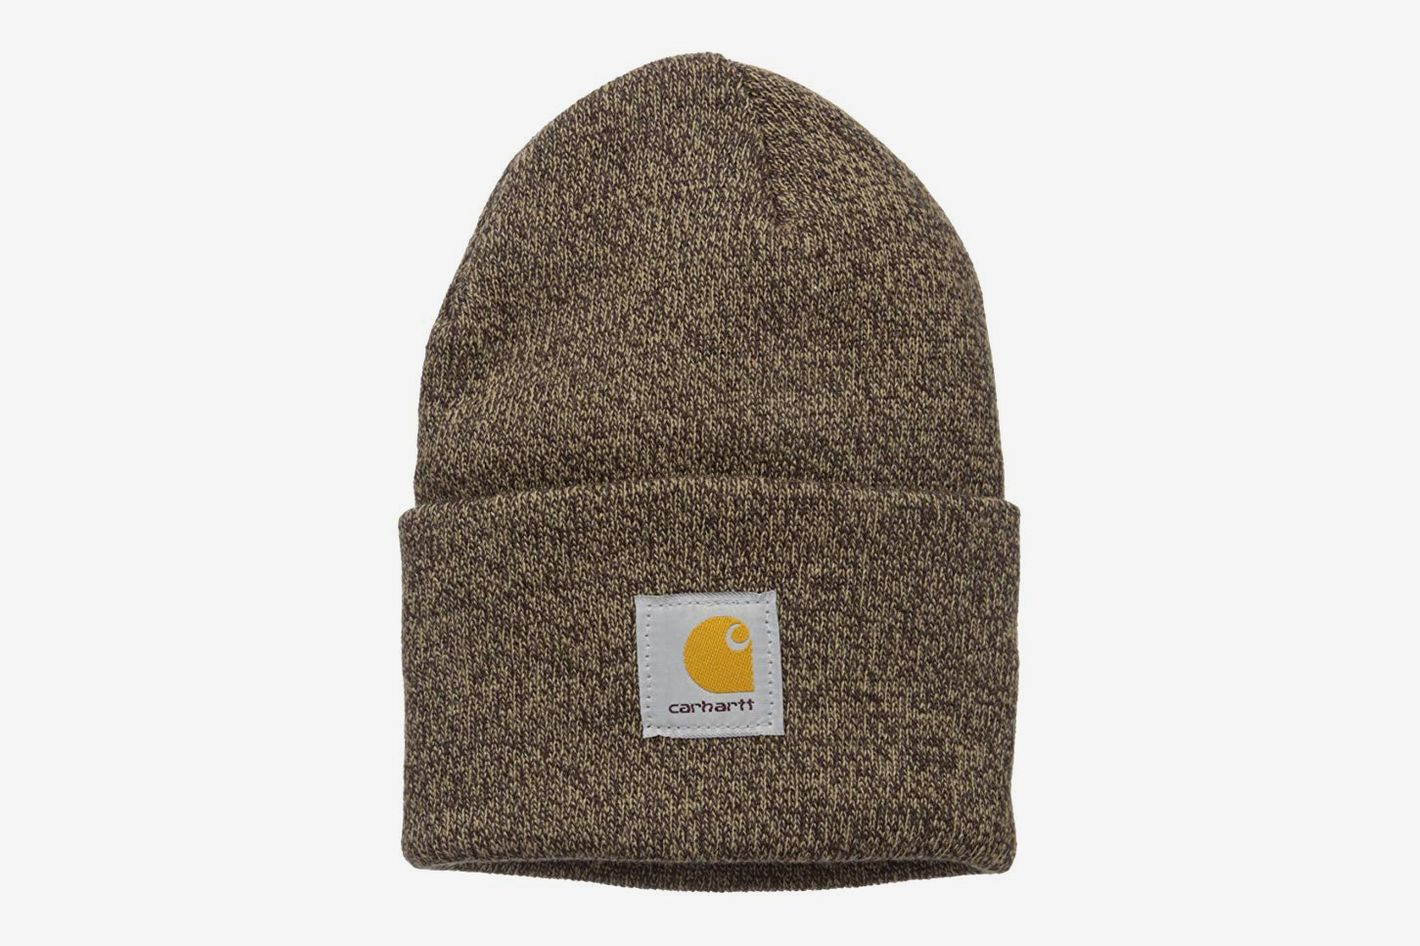 0220836491e Carhartt Beanies Are Everywhere. Here s Why.